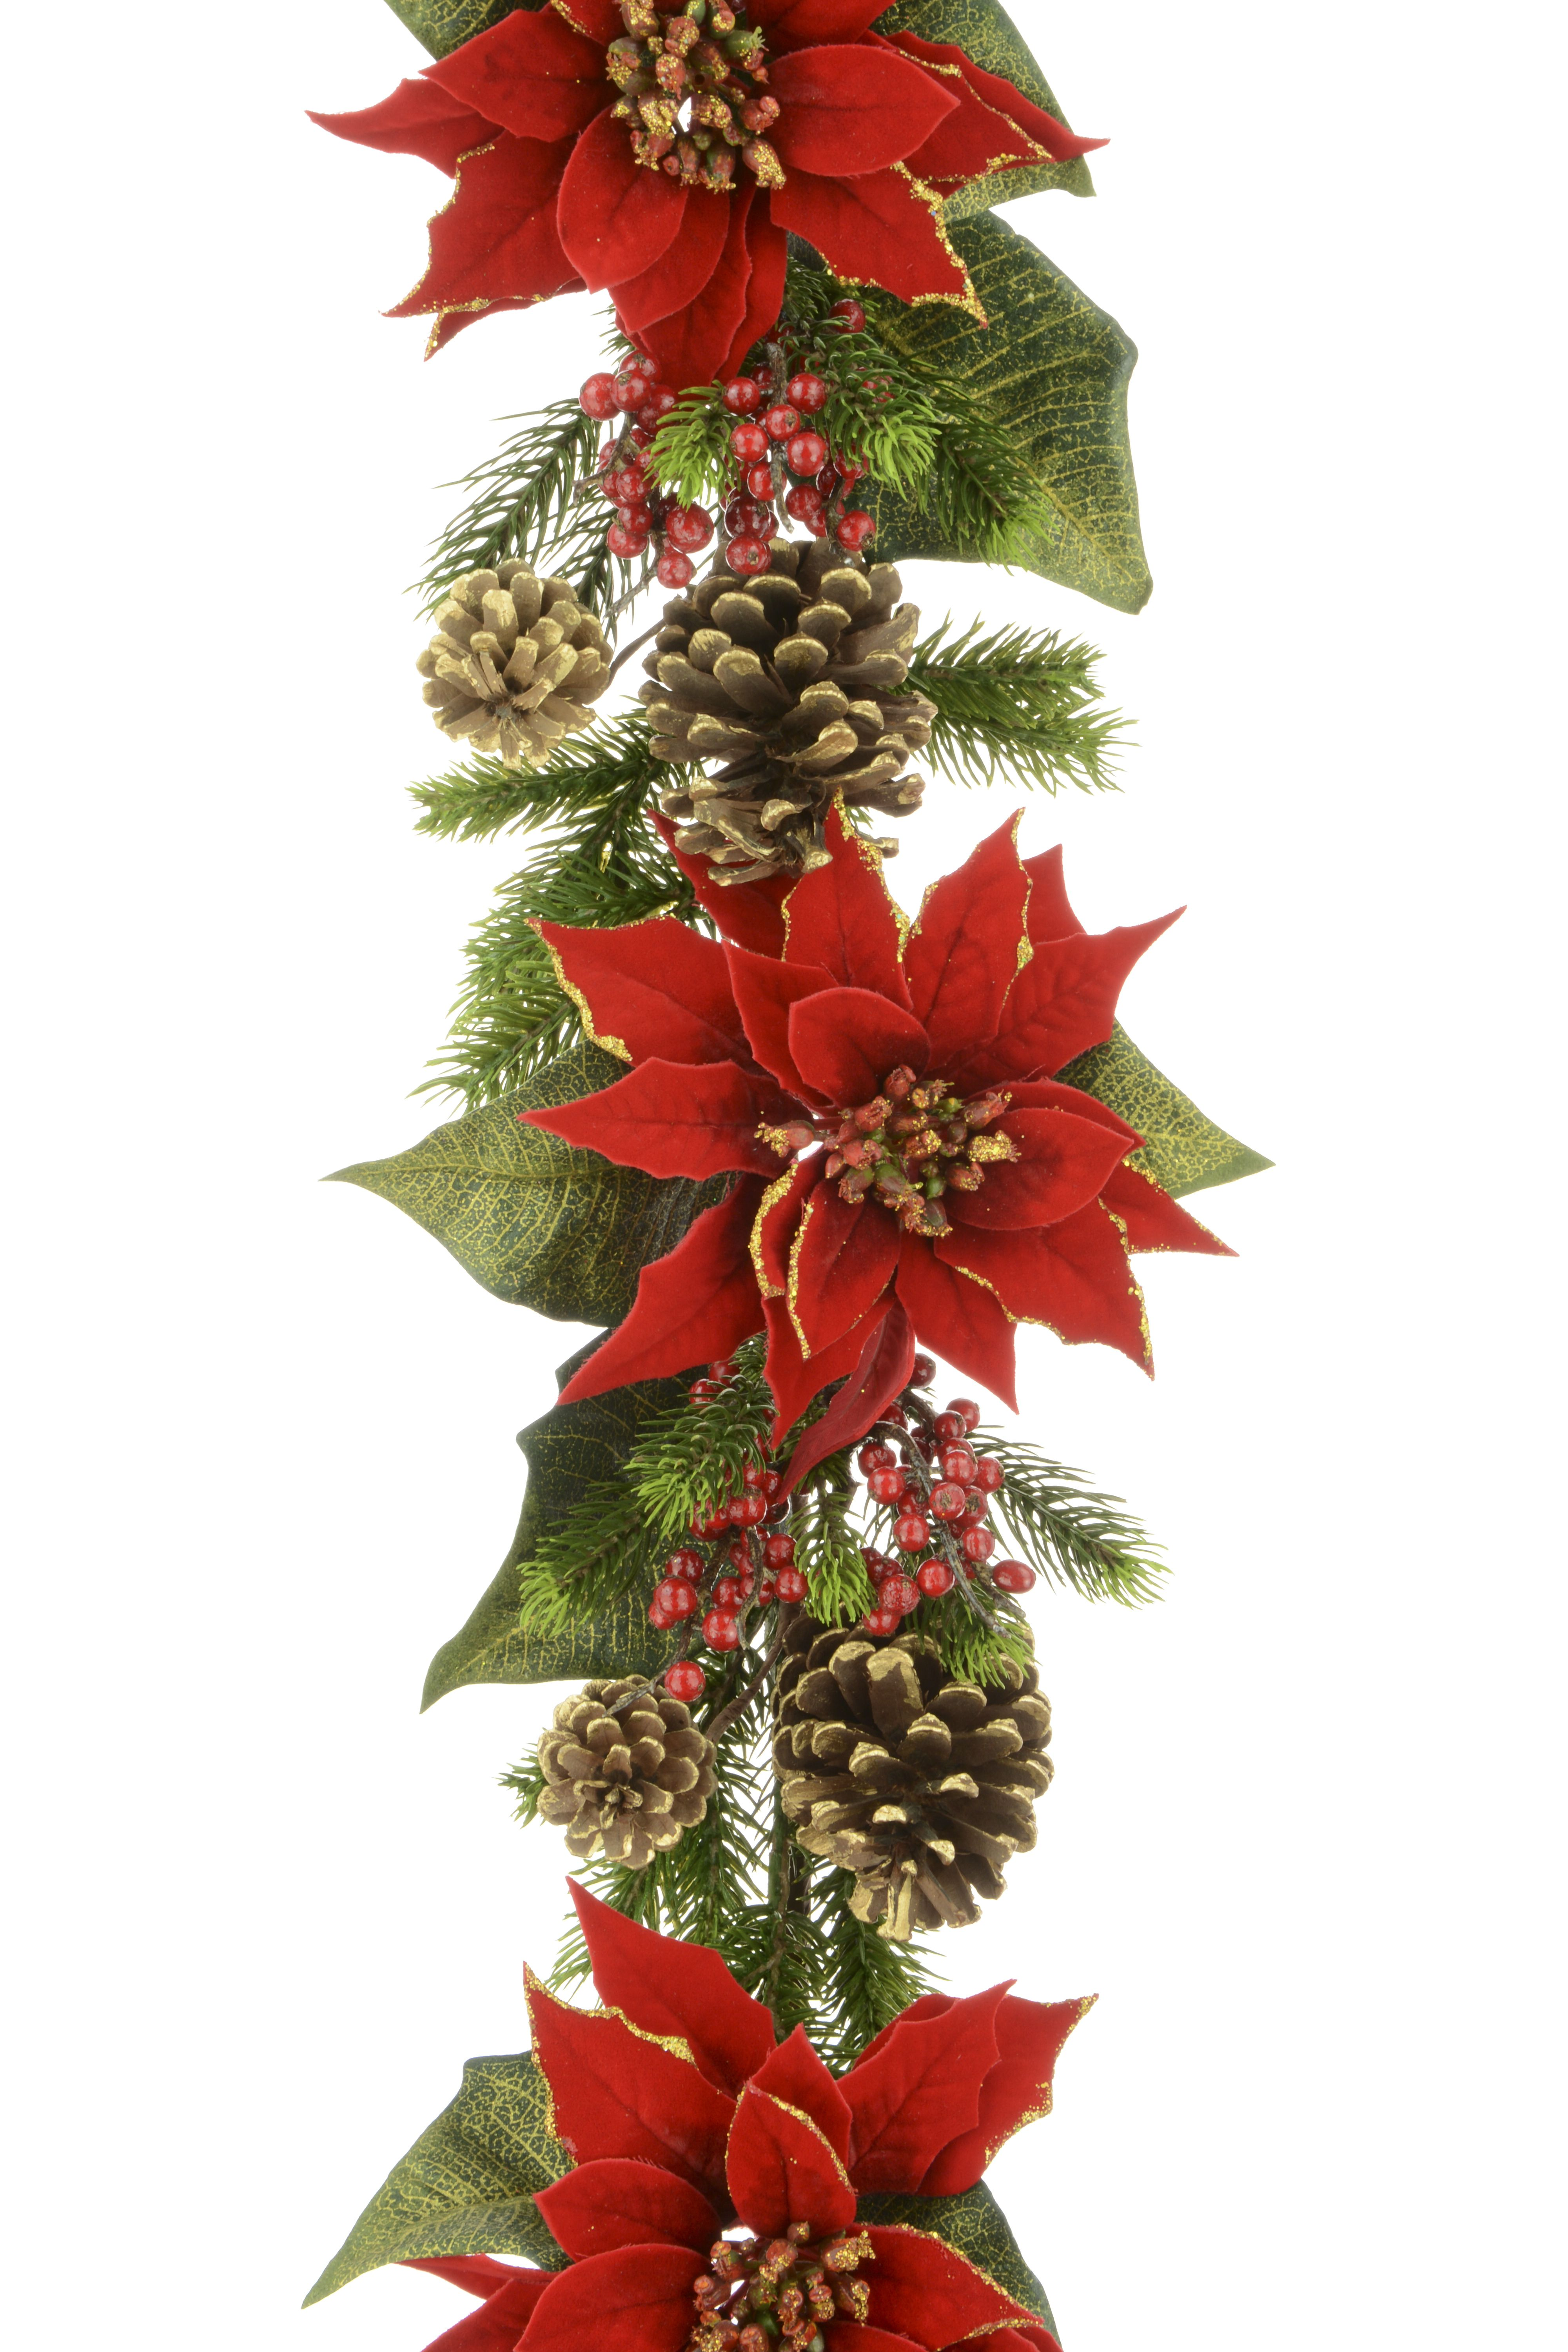 Majestic Red Poinsettia Garland Navidad Christmas Swags